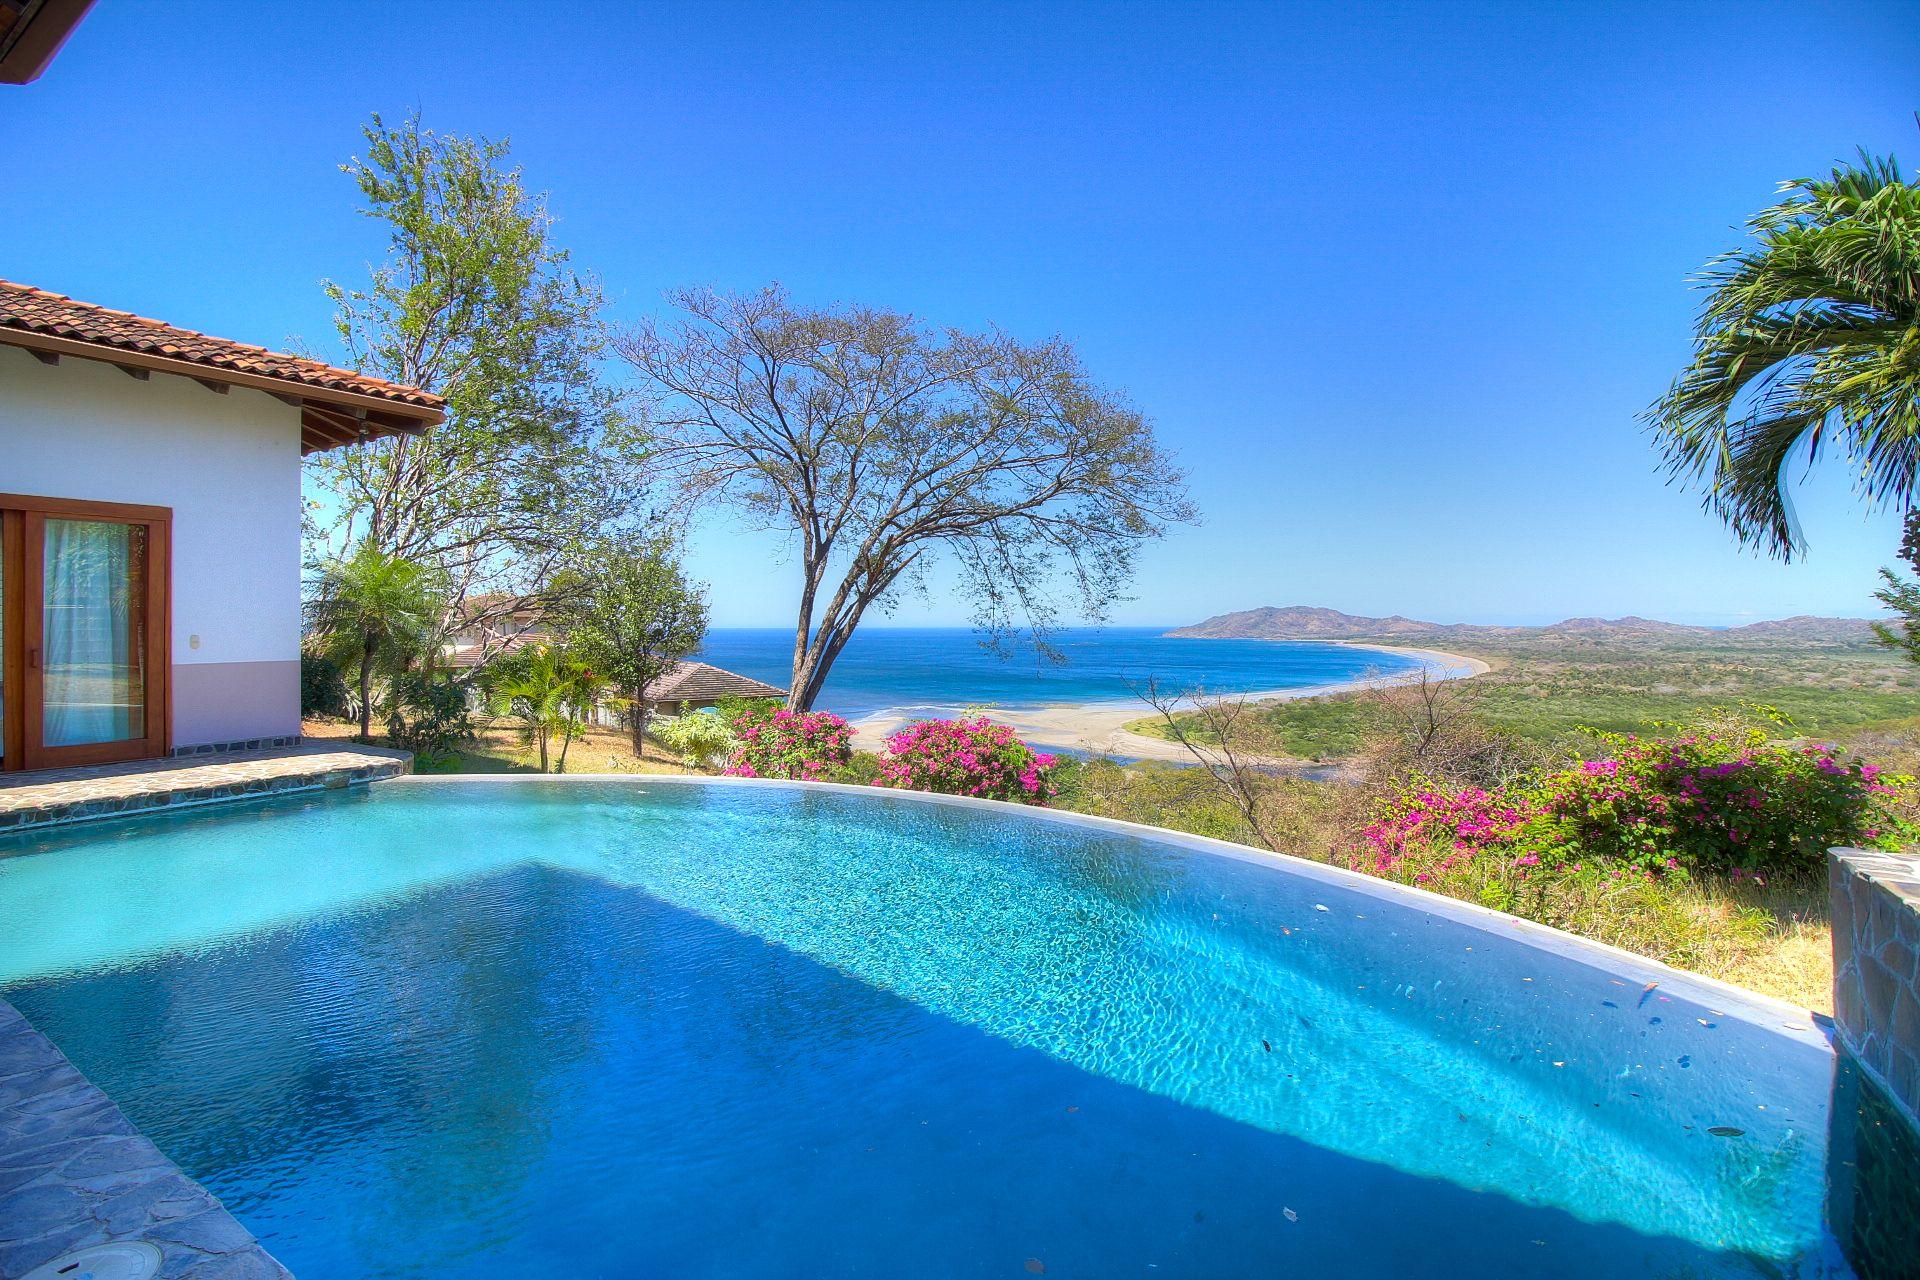 Casa Catalina has one of the best pools in Costa Rica